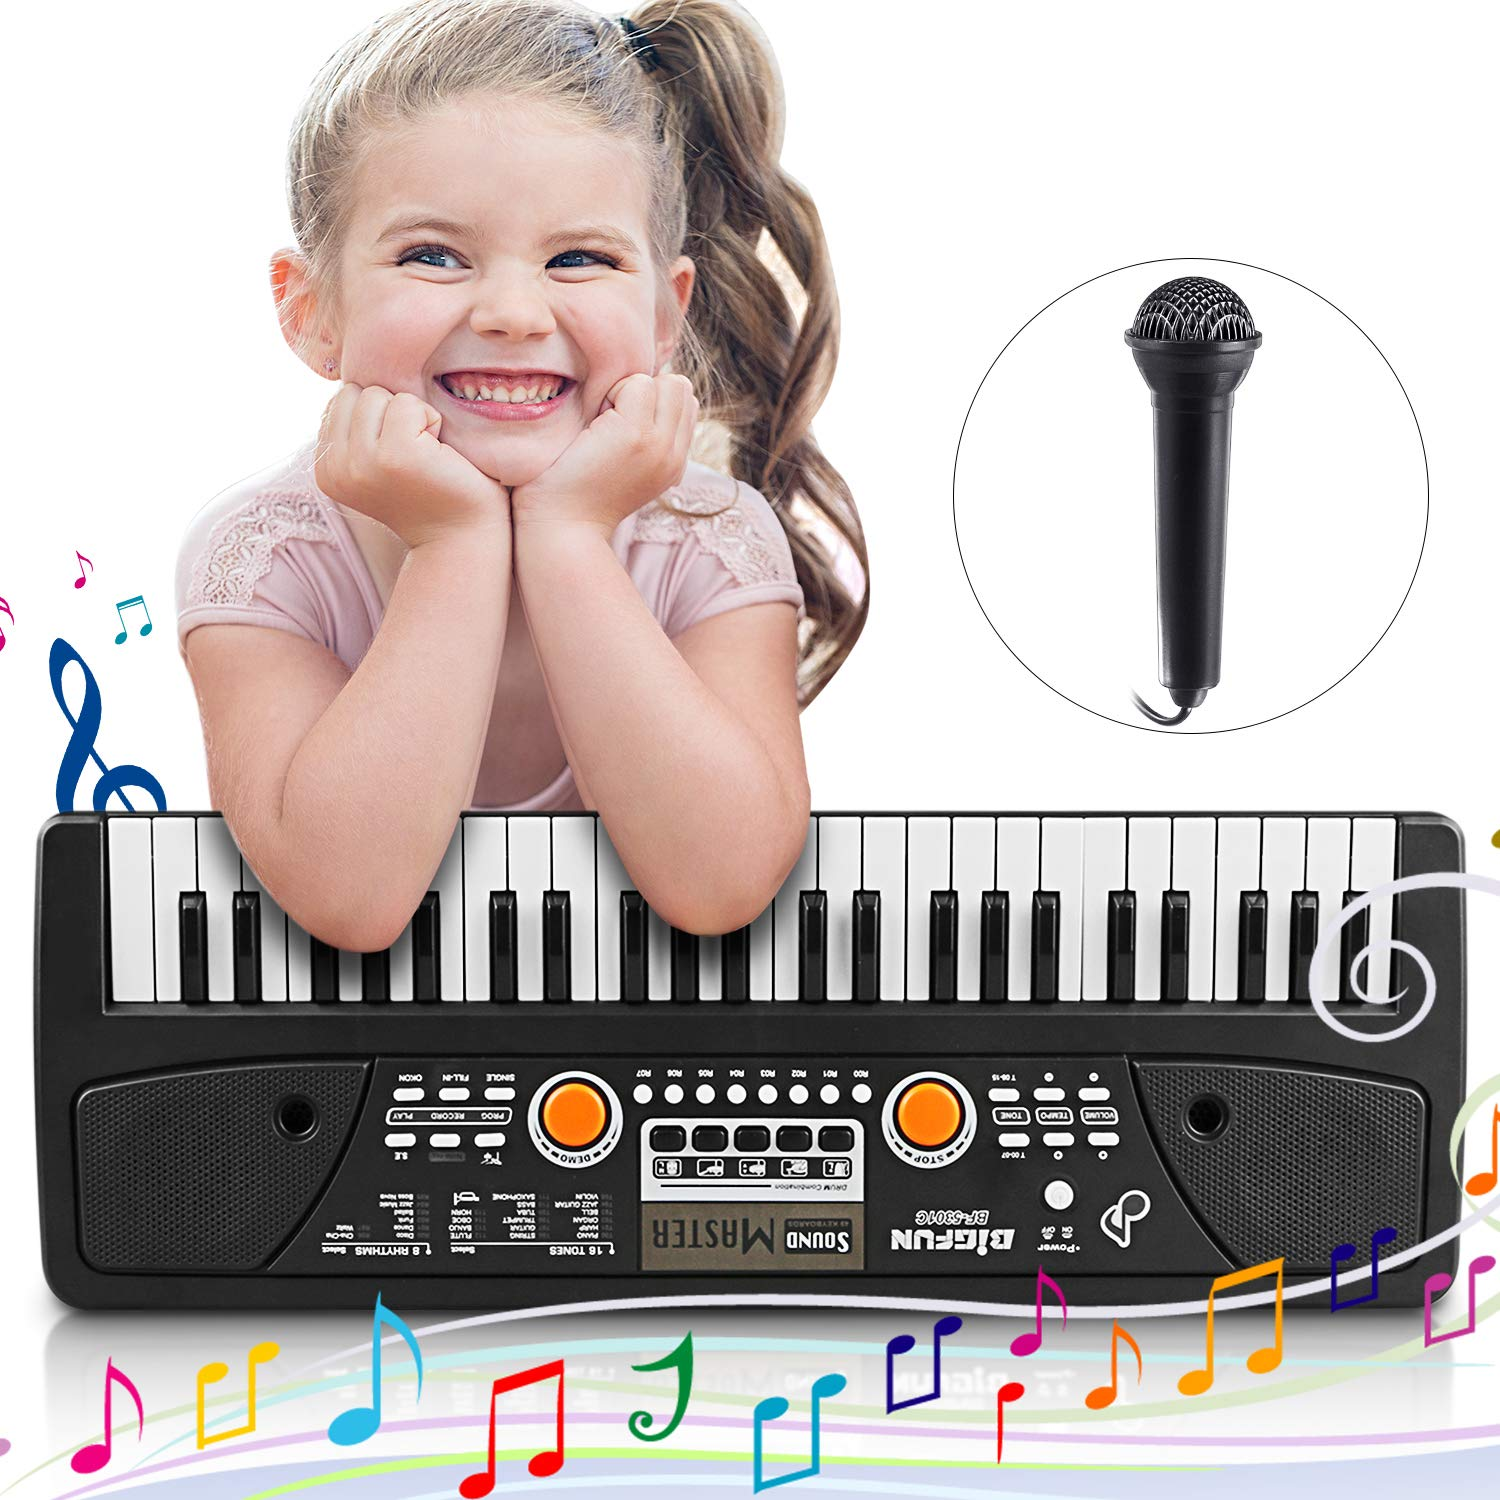 Digital Music Piano Keyboard 61 Key - Portable Electronic Musical Instrument Multi-function - with Microphone Kids Piano Musical Teaching Keyboard Toy Birthday Christmas Festival Gift for Kids MaGic-Store